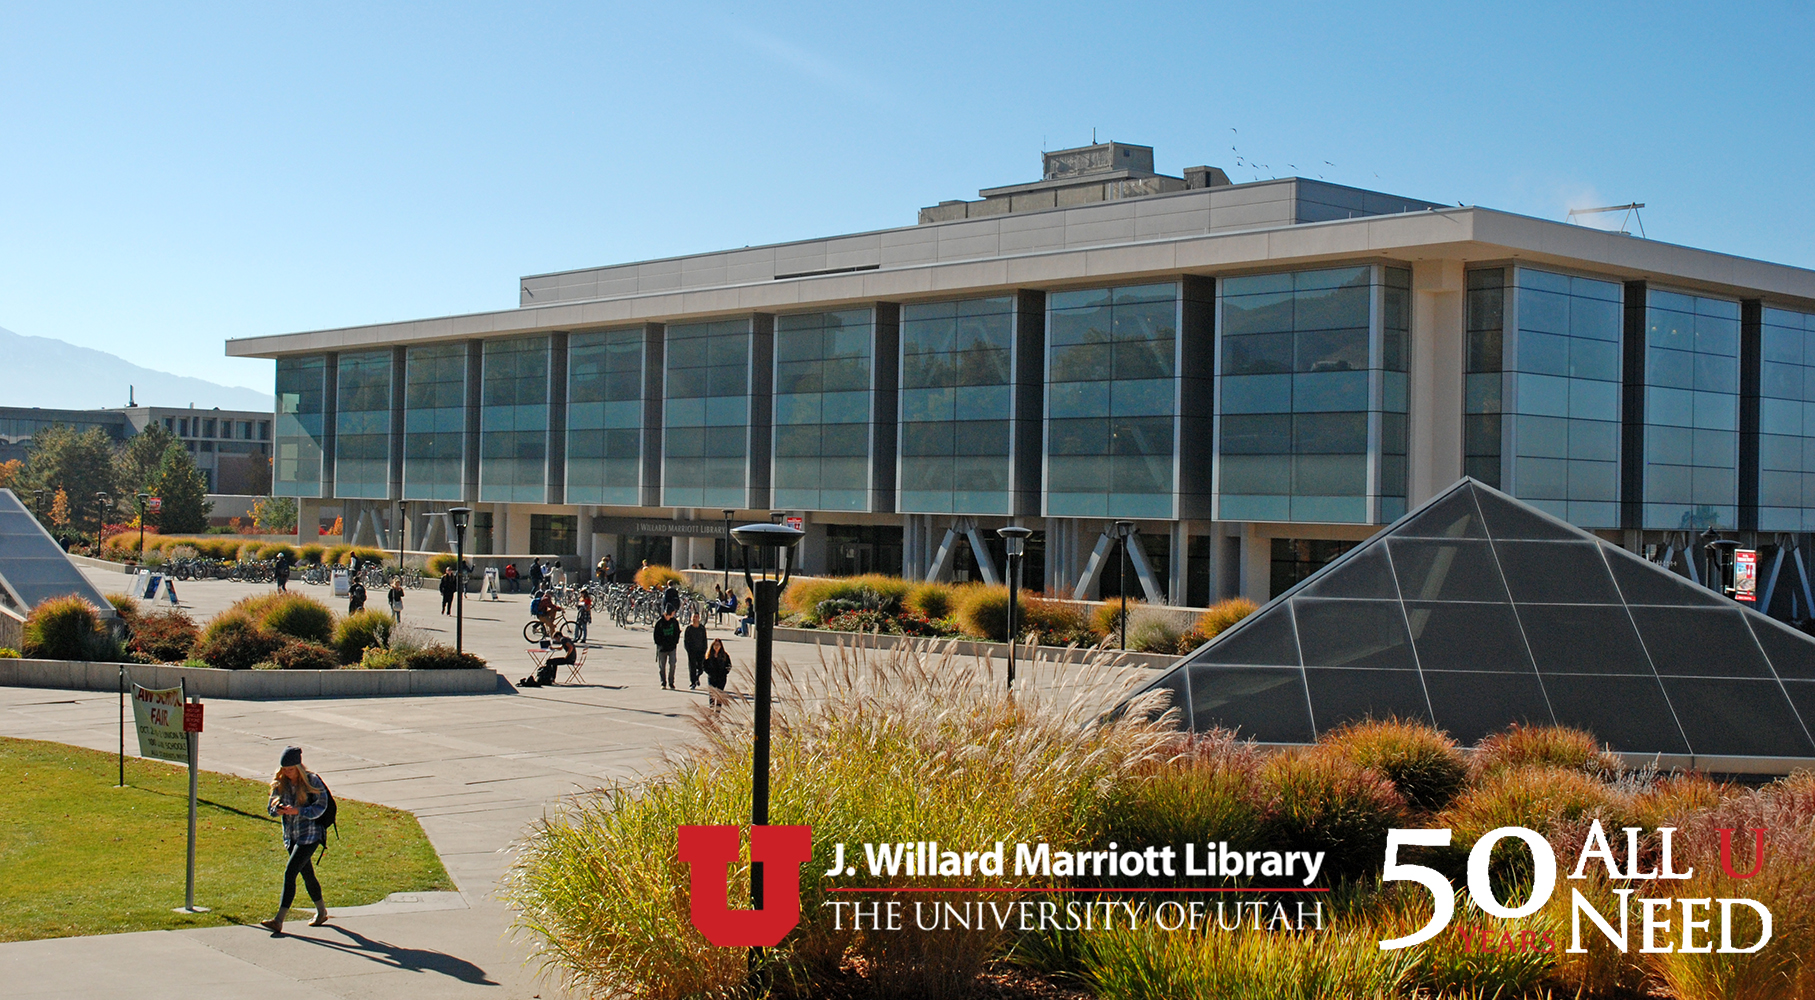 Image of the J. Willard Marriott Library on the campus of the University of Utah.